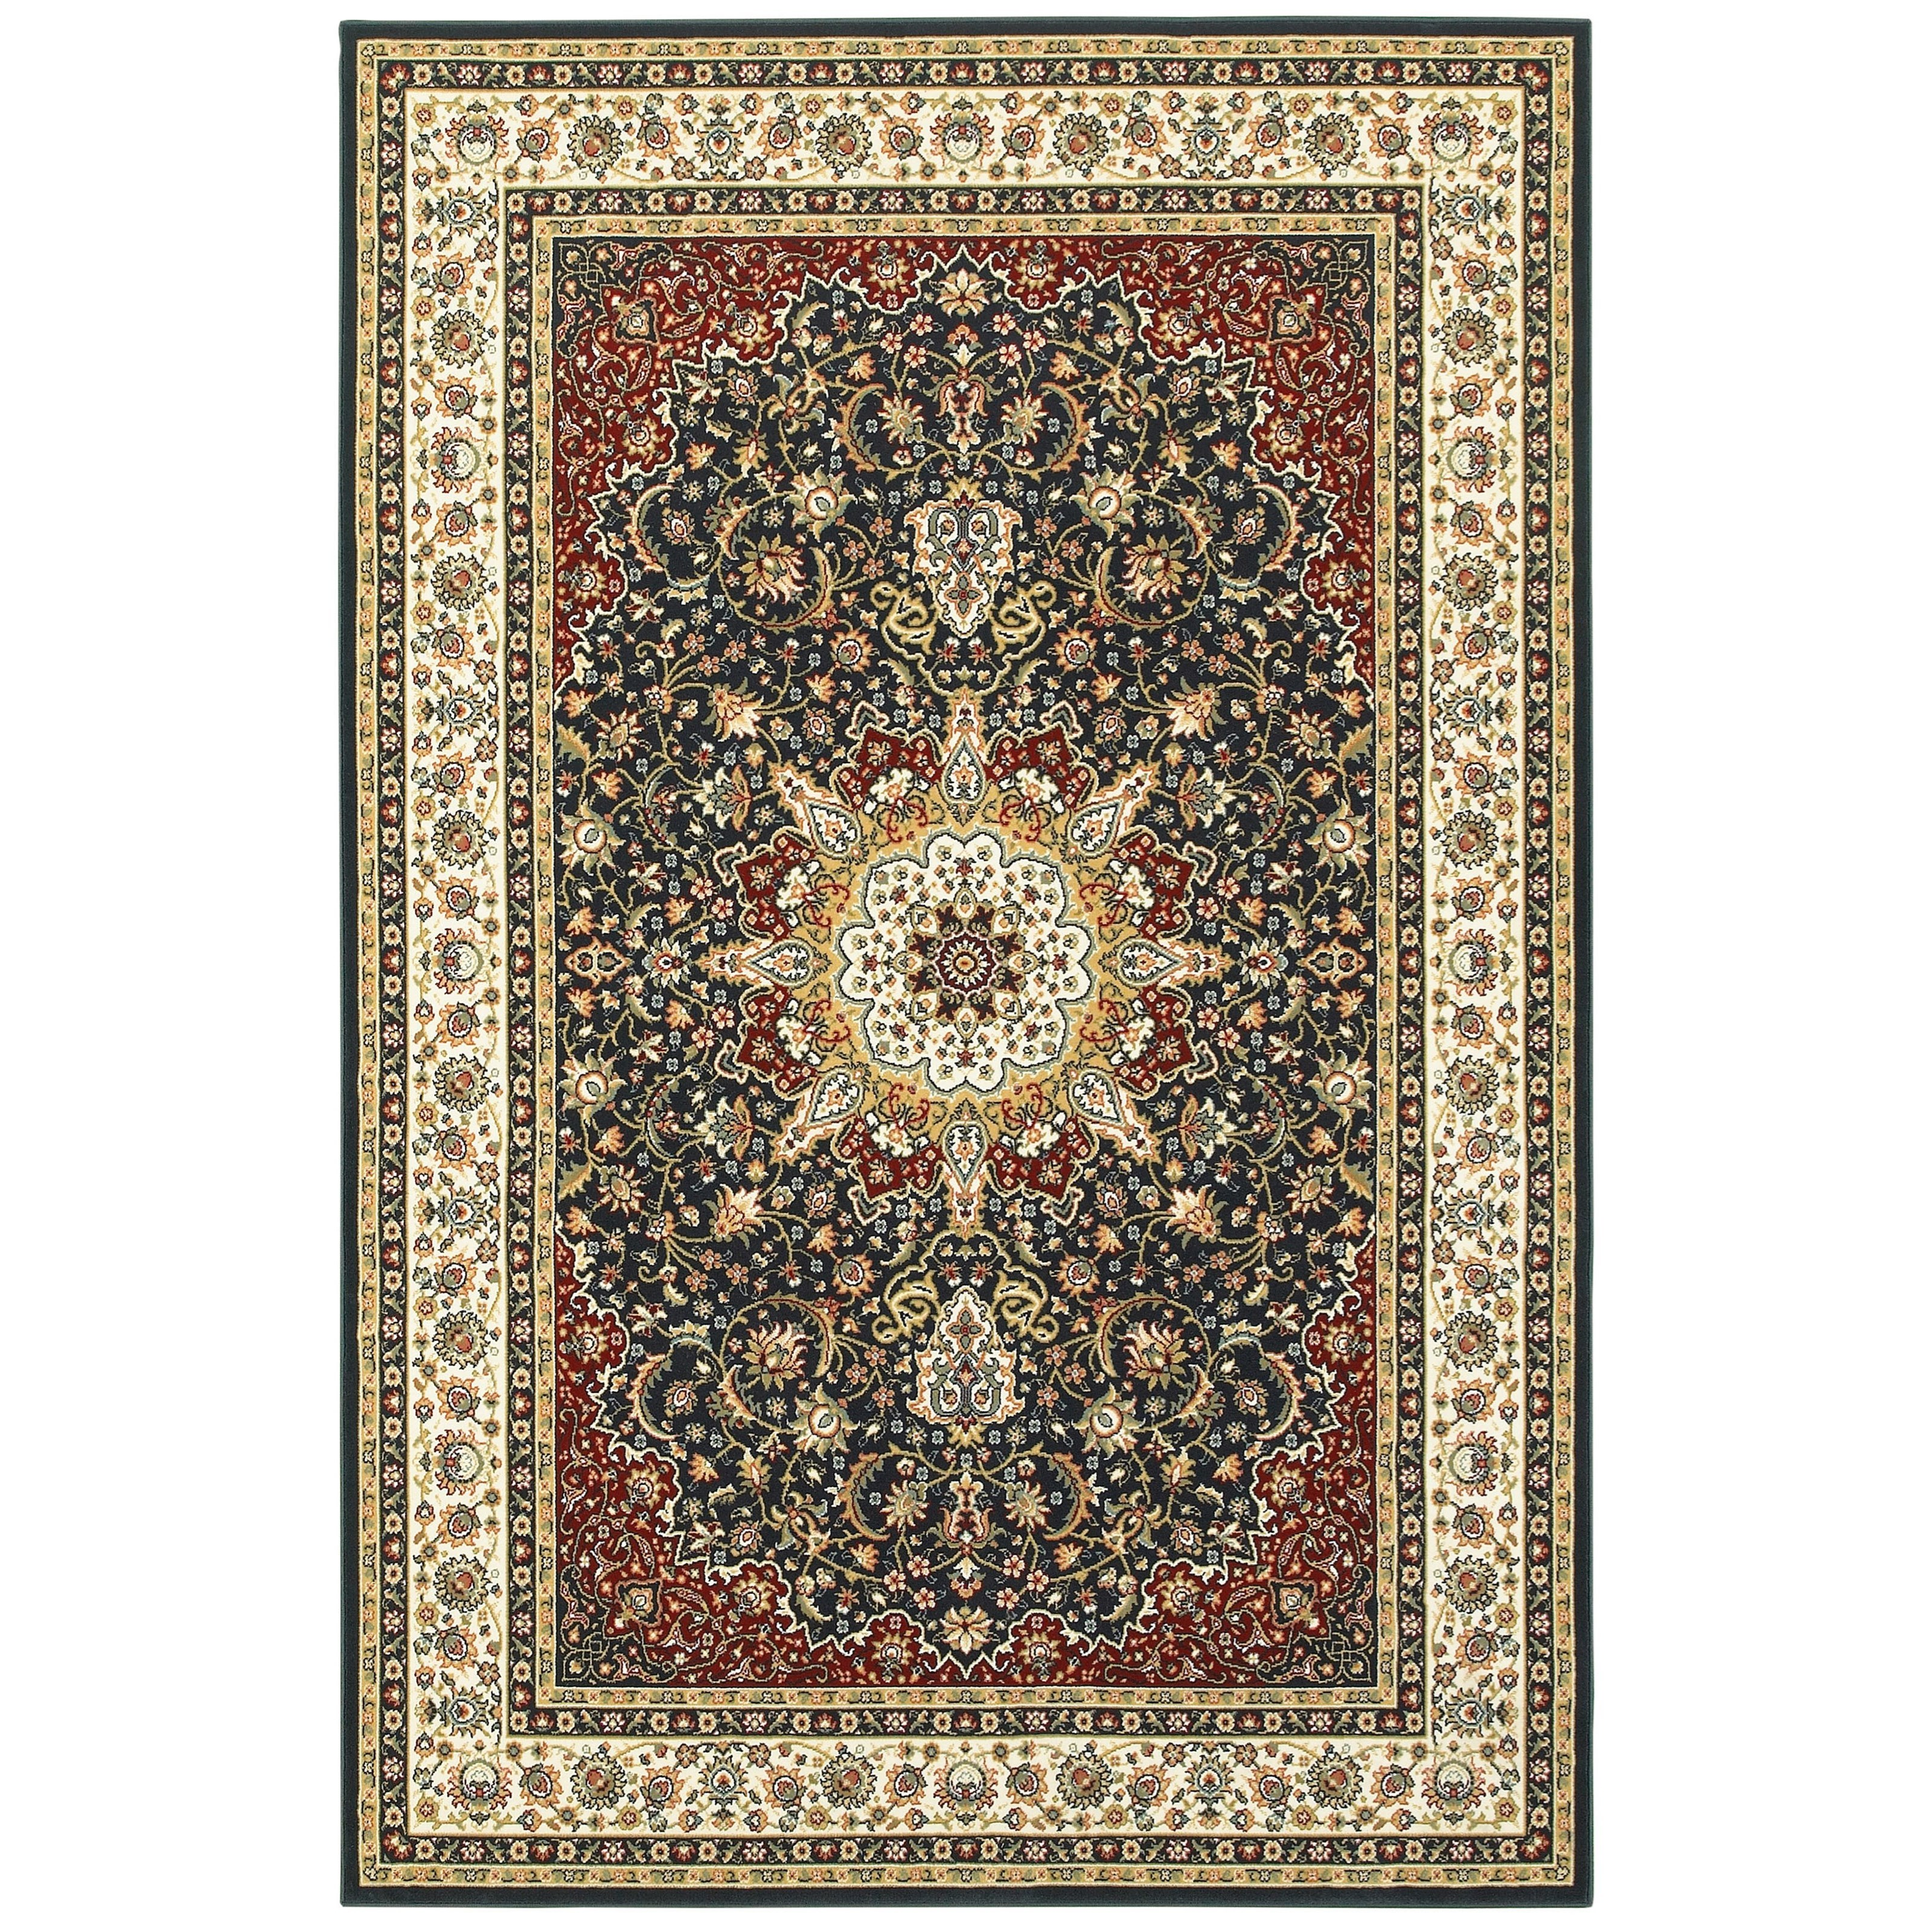 "Kashan 3'10"" X  5' 5"" Rectangle Rug by Oriental Weavers at Novello Home Furnishings"